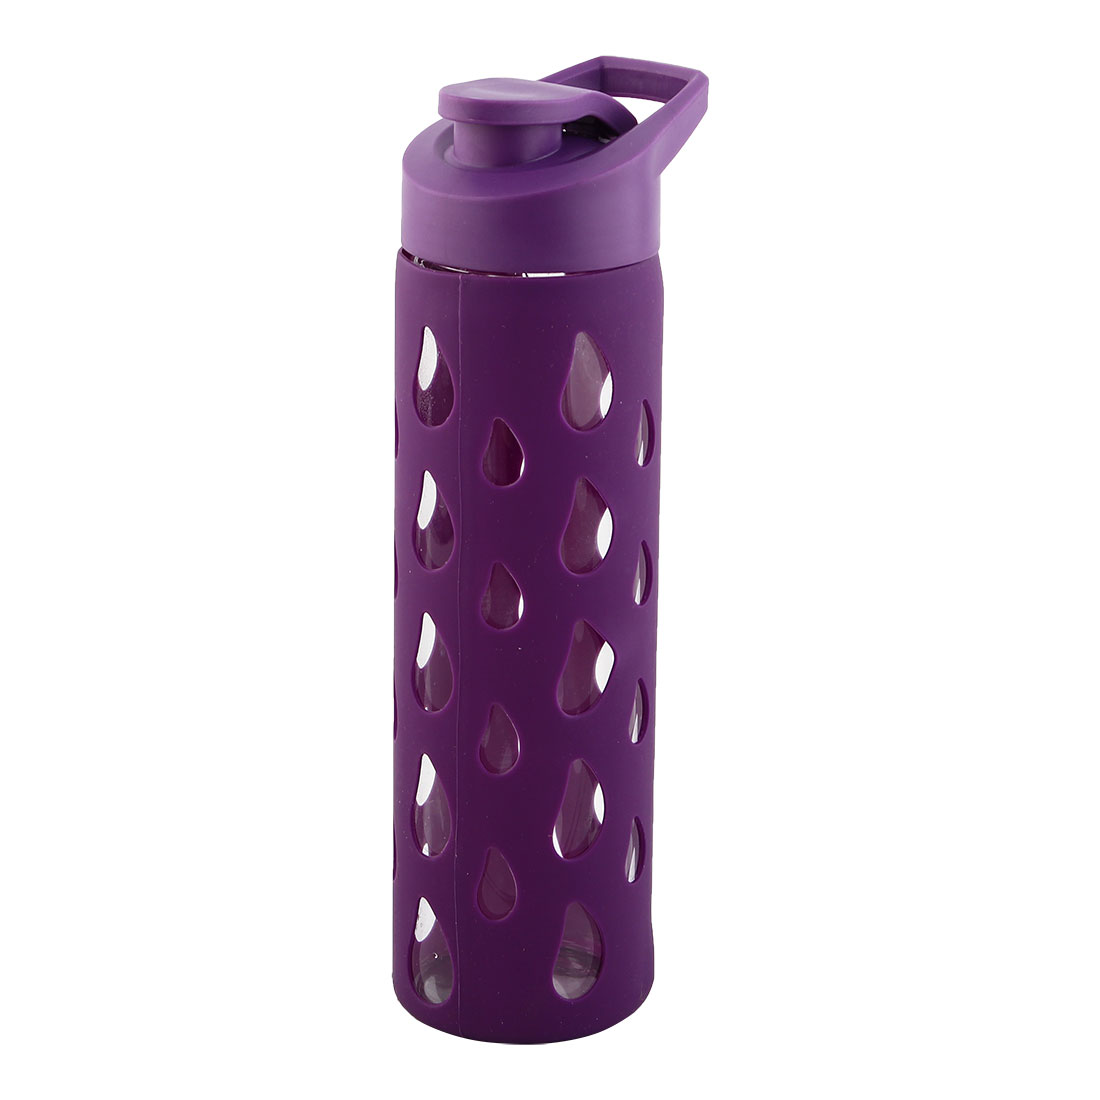 Silicone Sleeve Water Bottle Fruit Juice Cup Portable Driking Mug Driving Canteen Hiking Kettle Purple 550ml